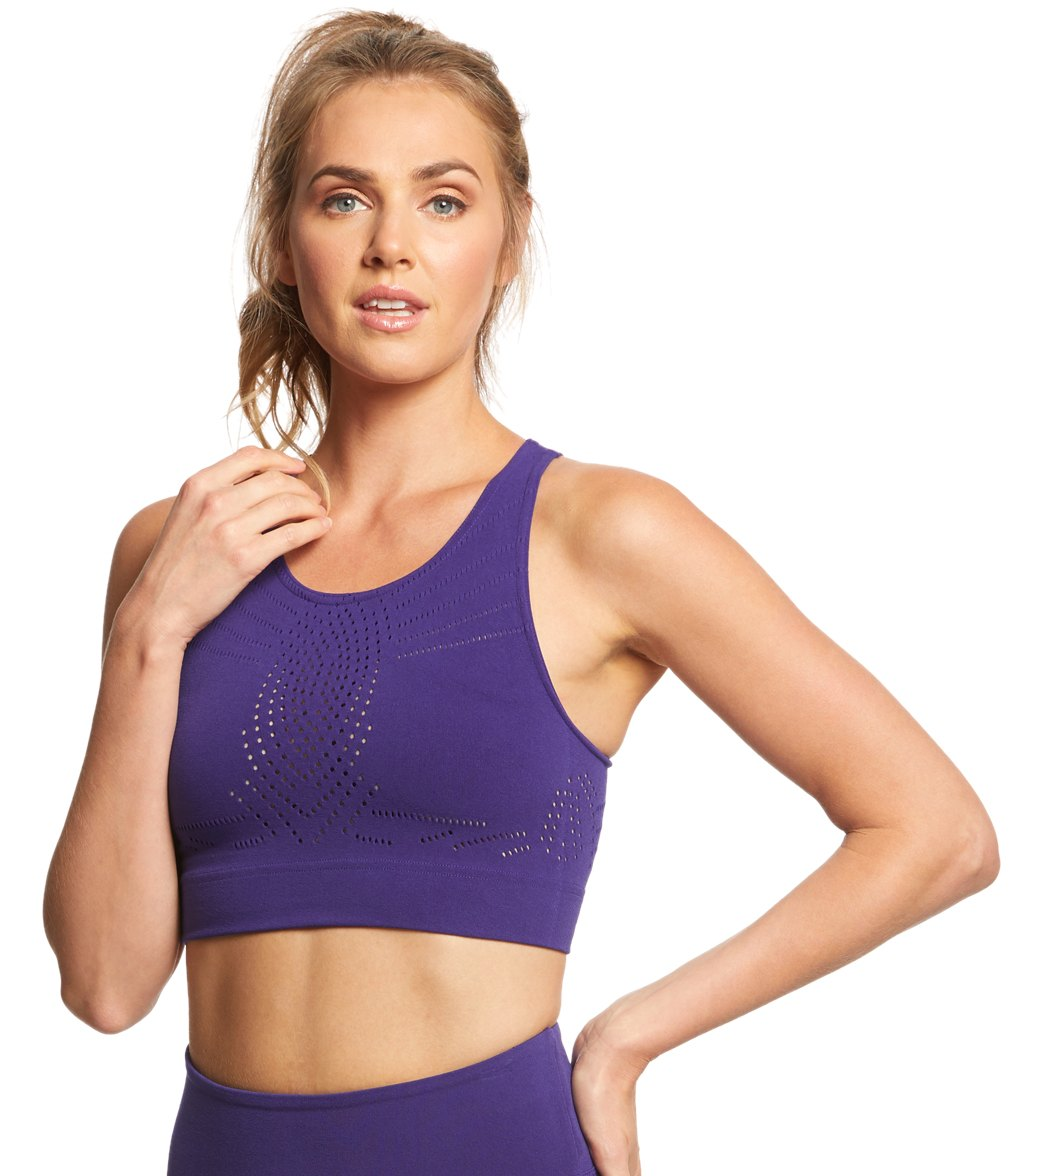 b07c32adbaad9 Free People Movement Ecology Seamless Sports Bra at YogaOutlet.com ...